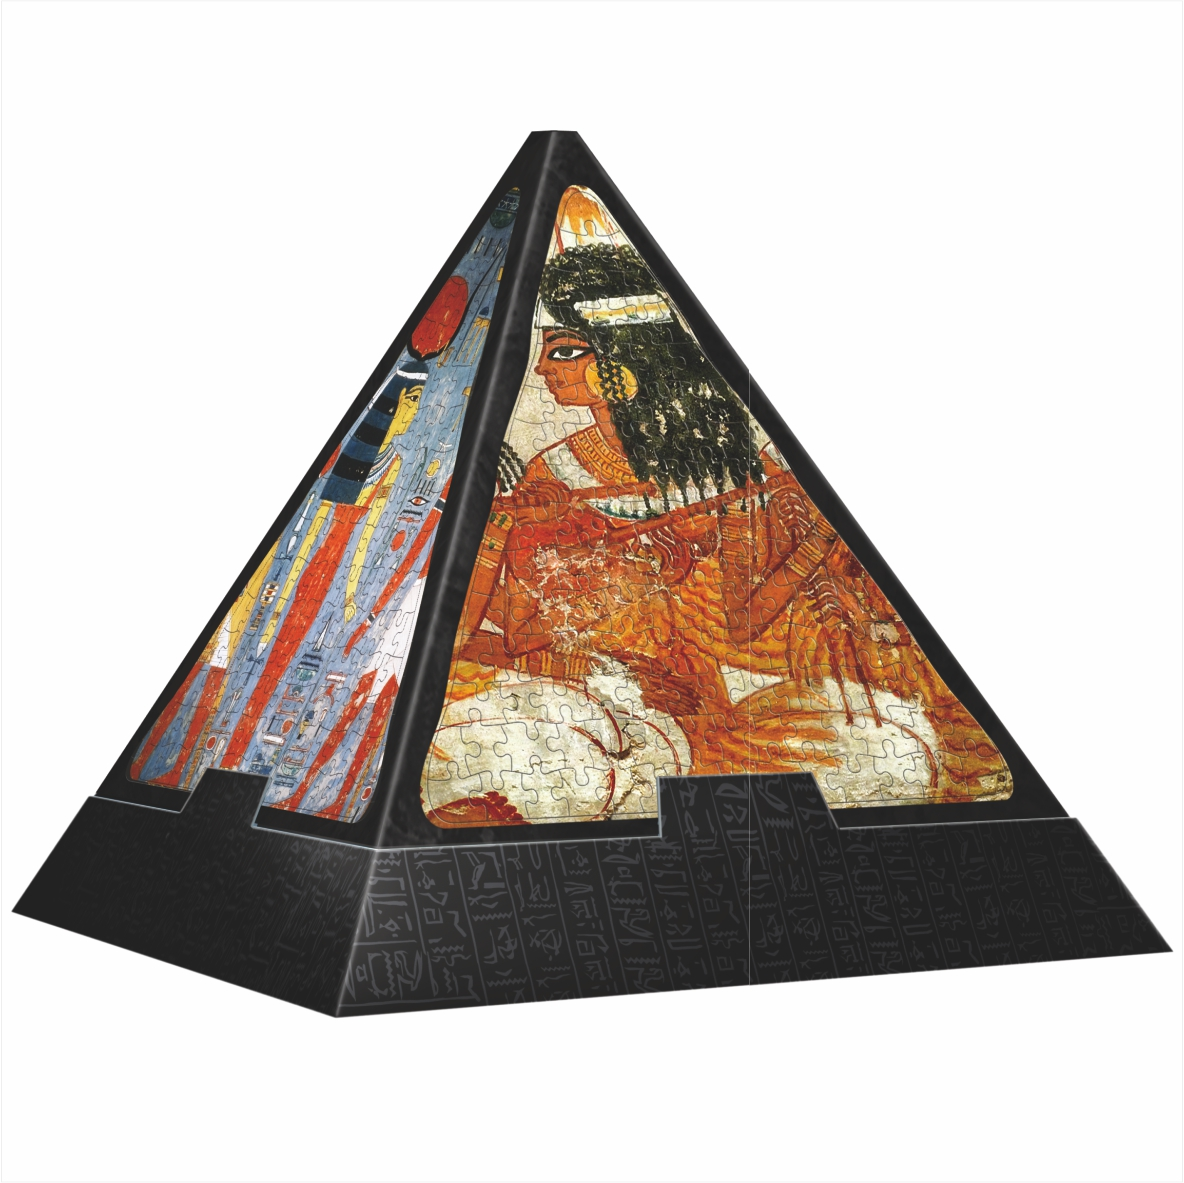 pyramide-3d-egypte-fresques-egyptiennes